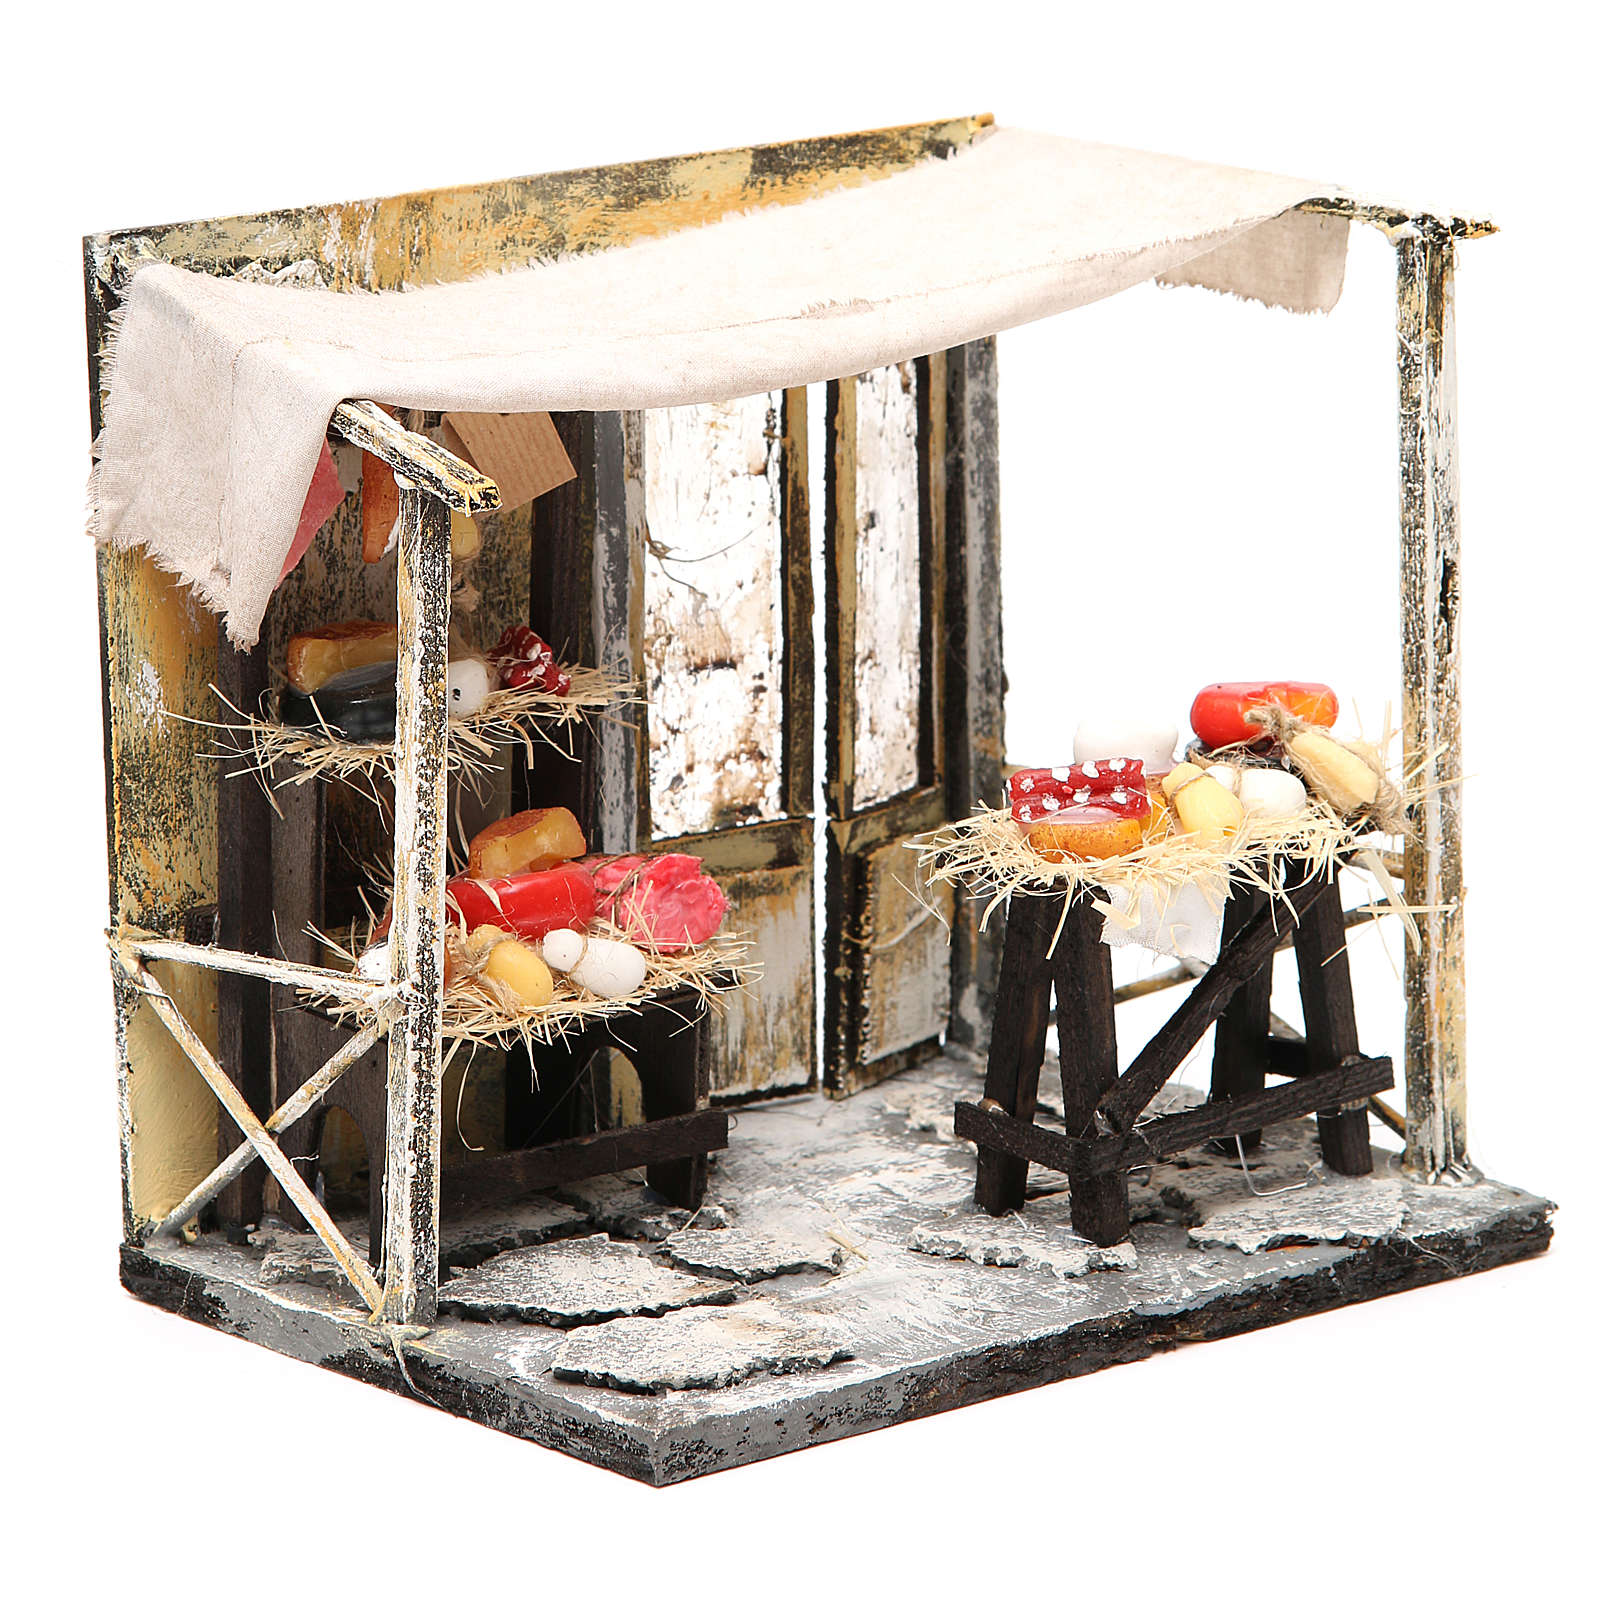 Nativity cured meat seller stall in wax, 18x20x14cm 4